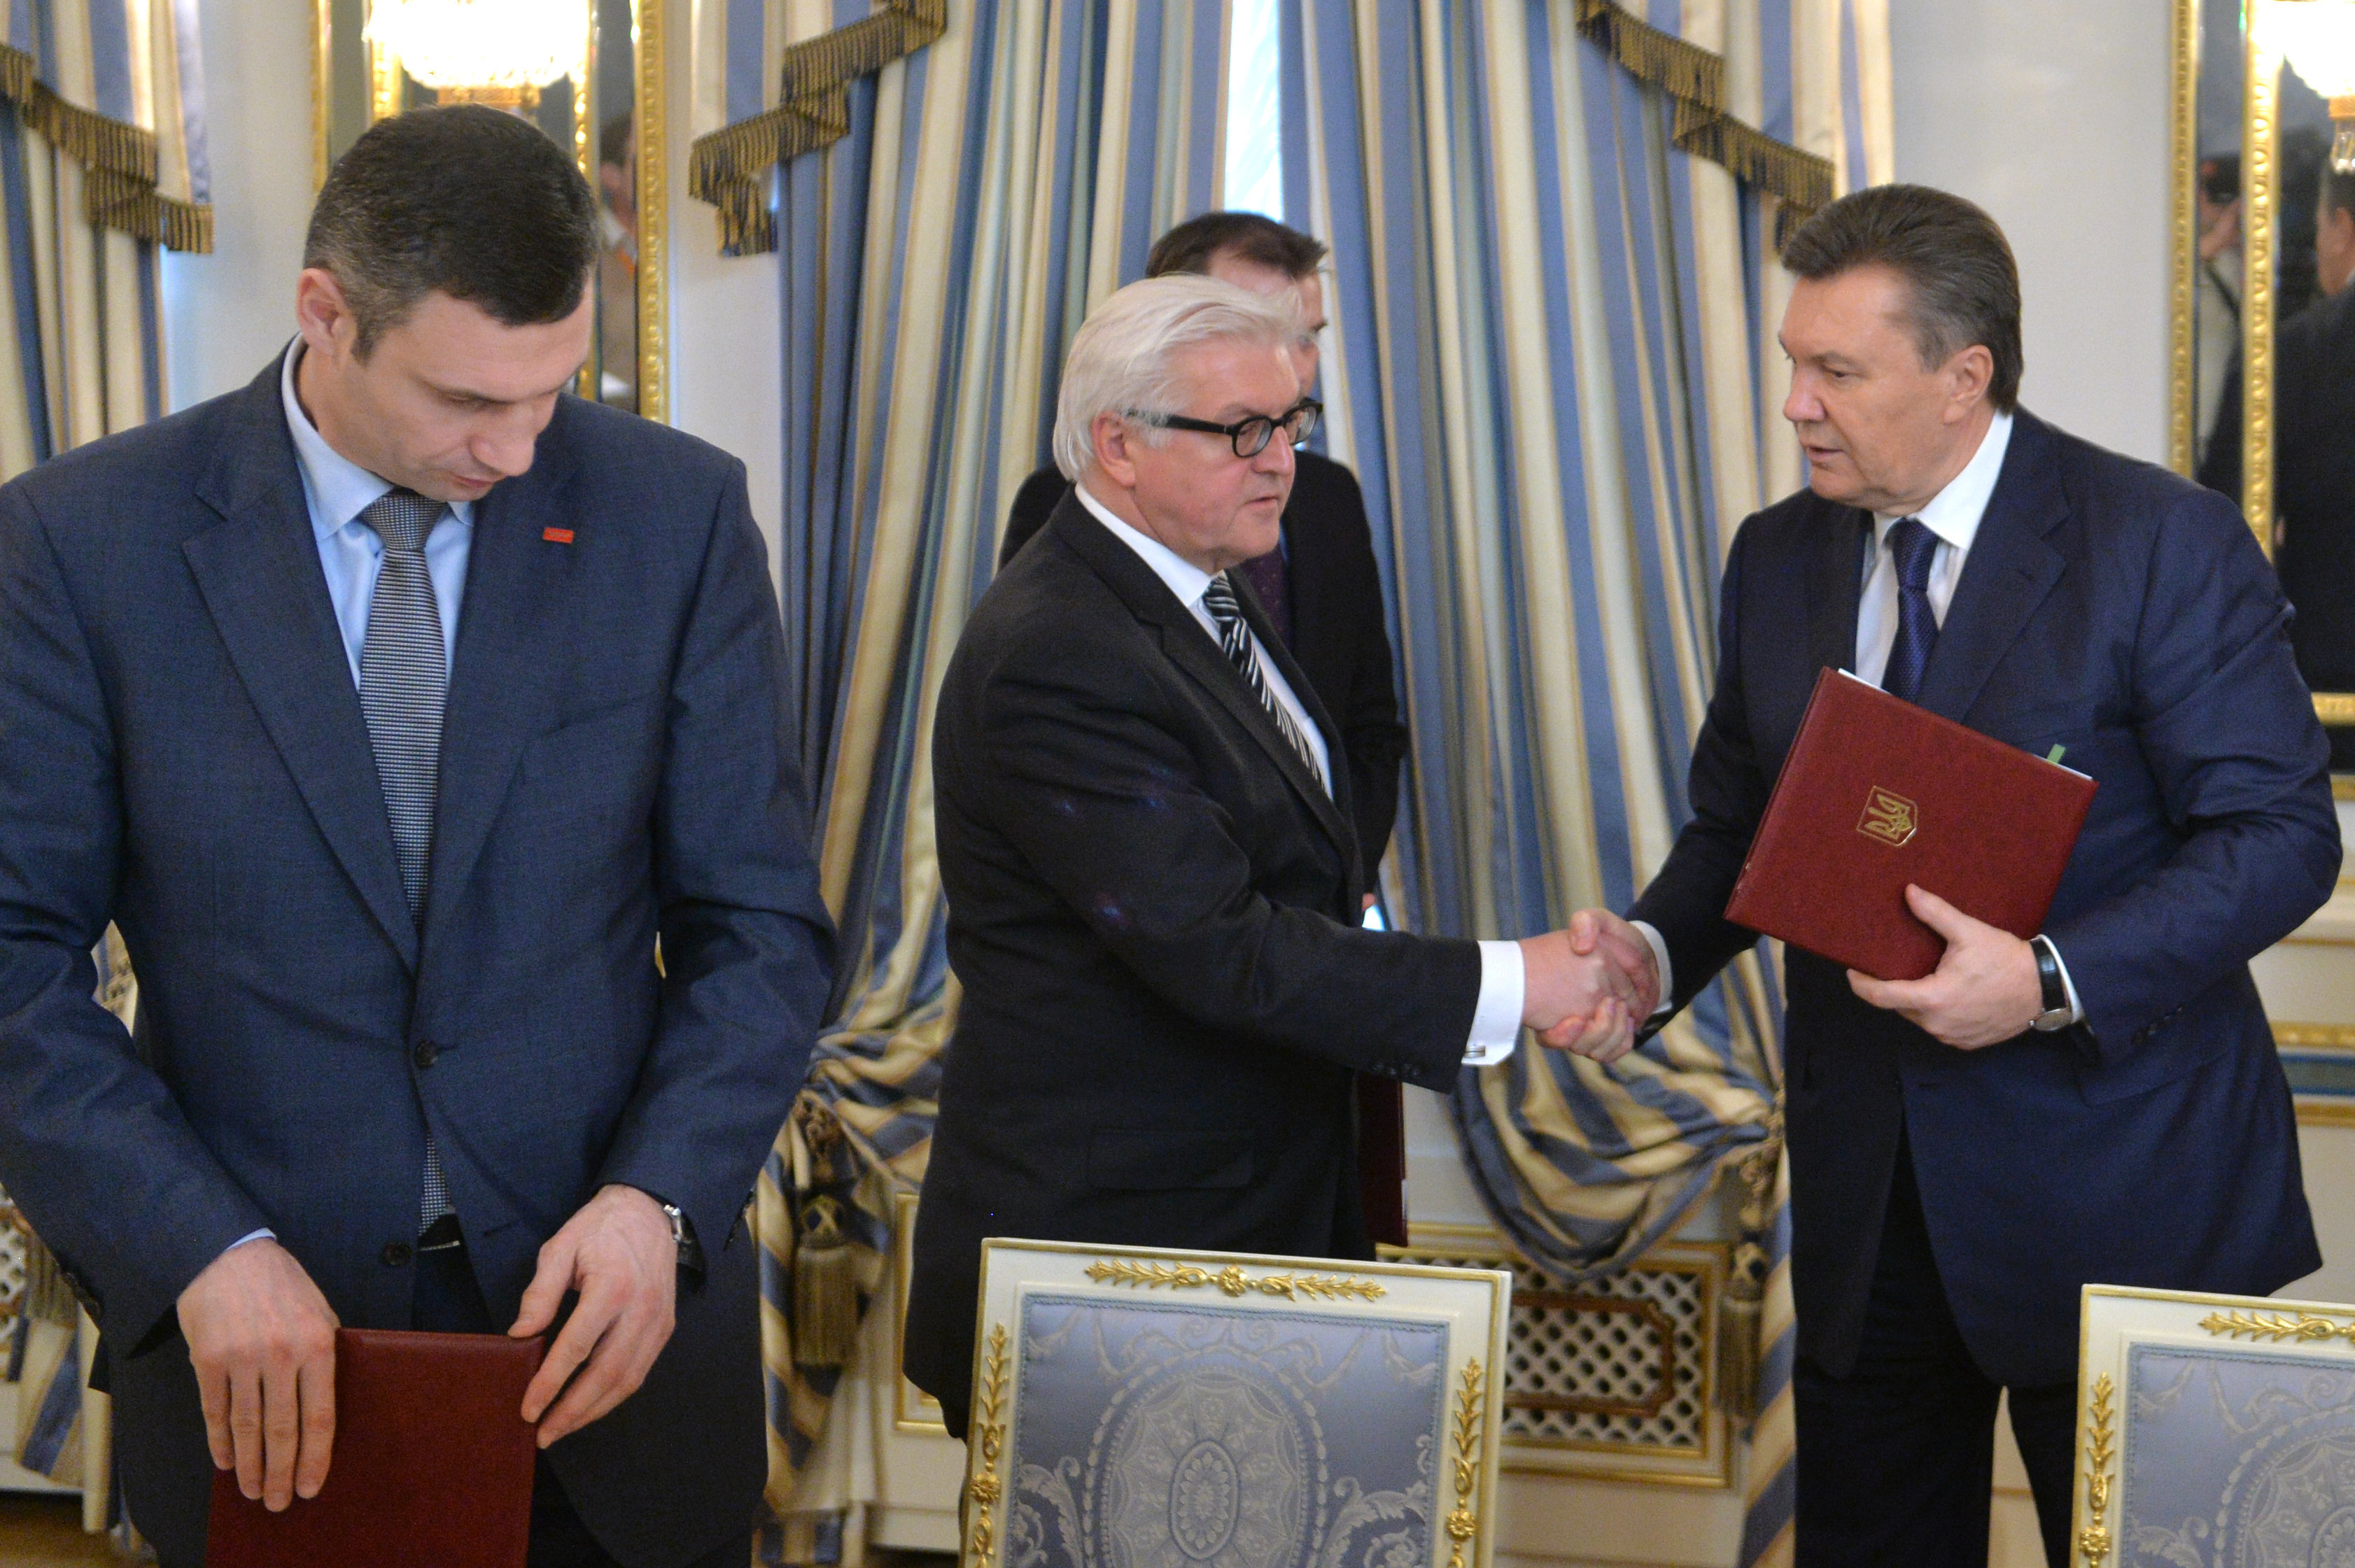 German Foreign Affairs minister Frank-Walter Steinmeier (C) and Ukrainian President Viktor Yanukovych (R) shake hands as head of Vitali Klitschko, one of Maidan's leaders, looks on after the signing of what was thought to be a compromise deal in Kiev on February 21, 2014